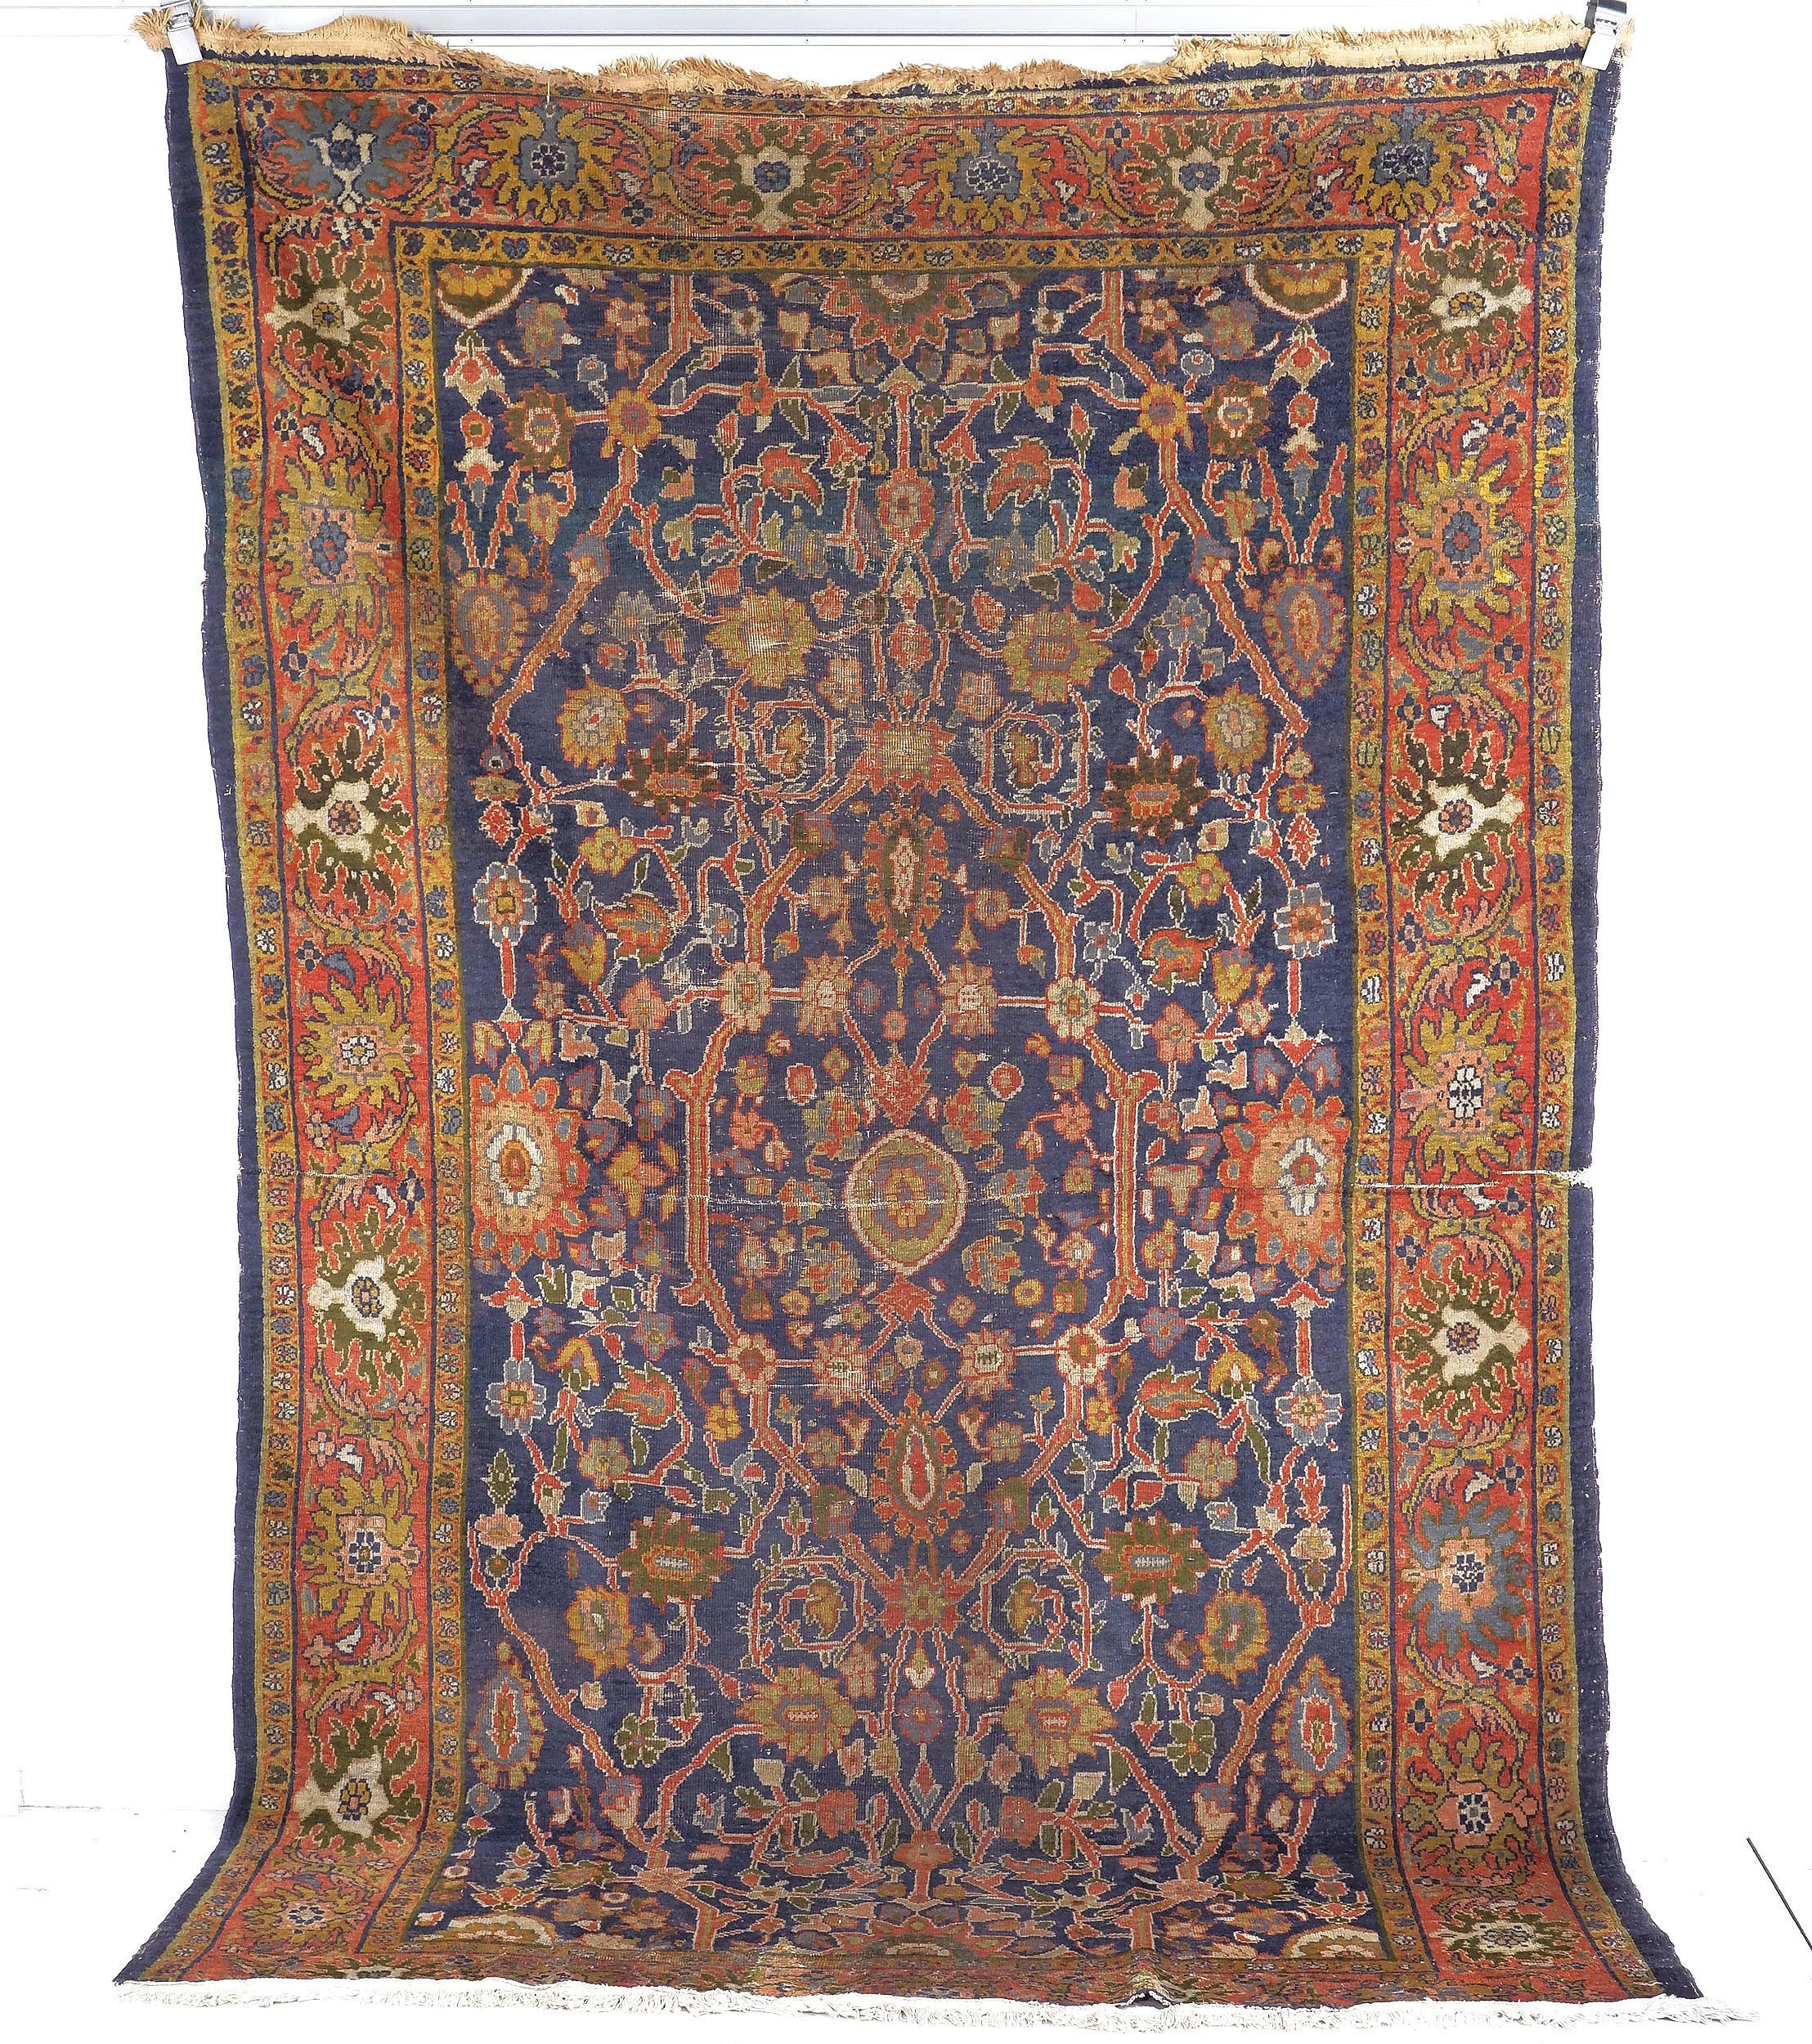 'Rare Antique Persian Sultanabad Hand Knotted Wool Pile Carpet Circa 1890'